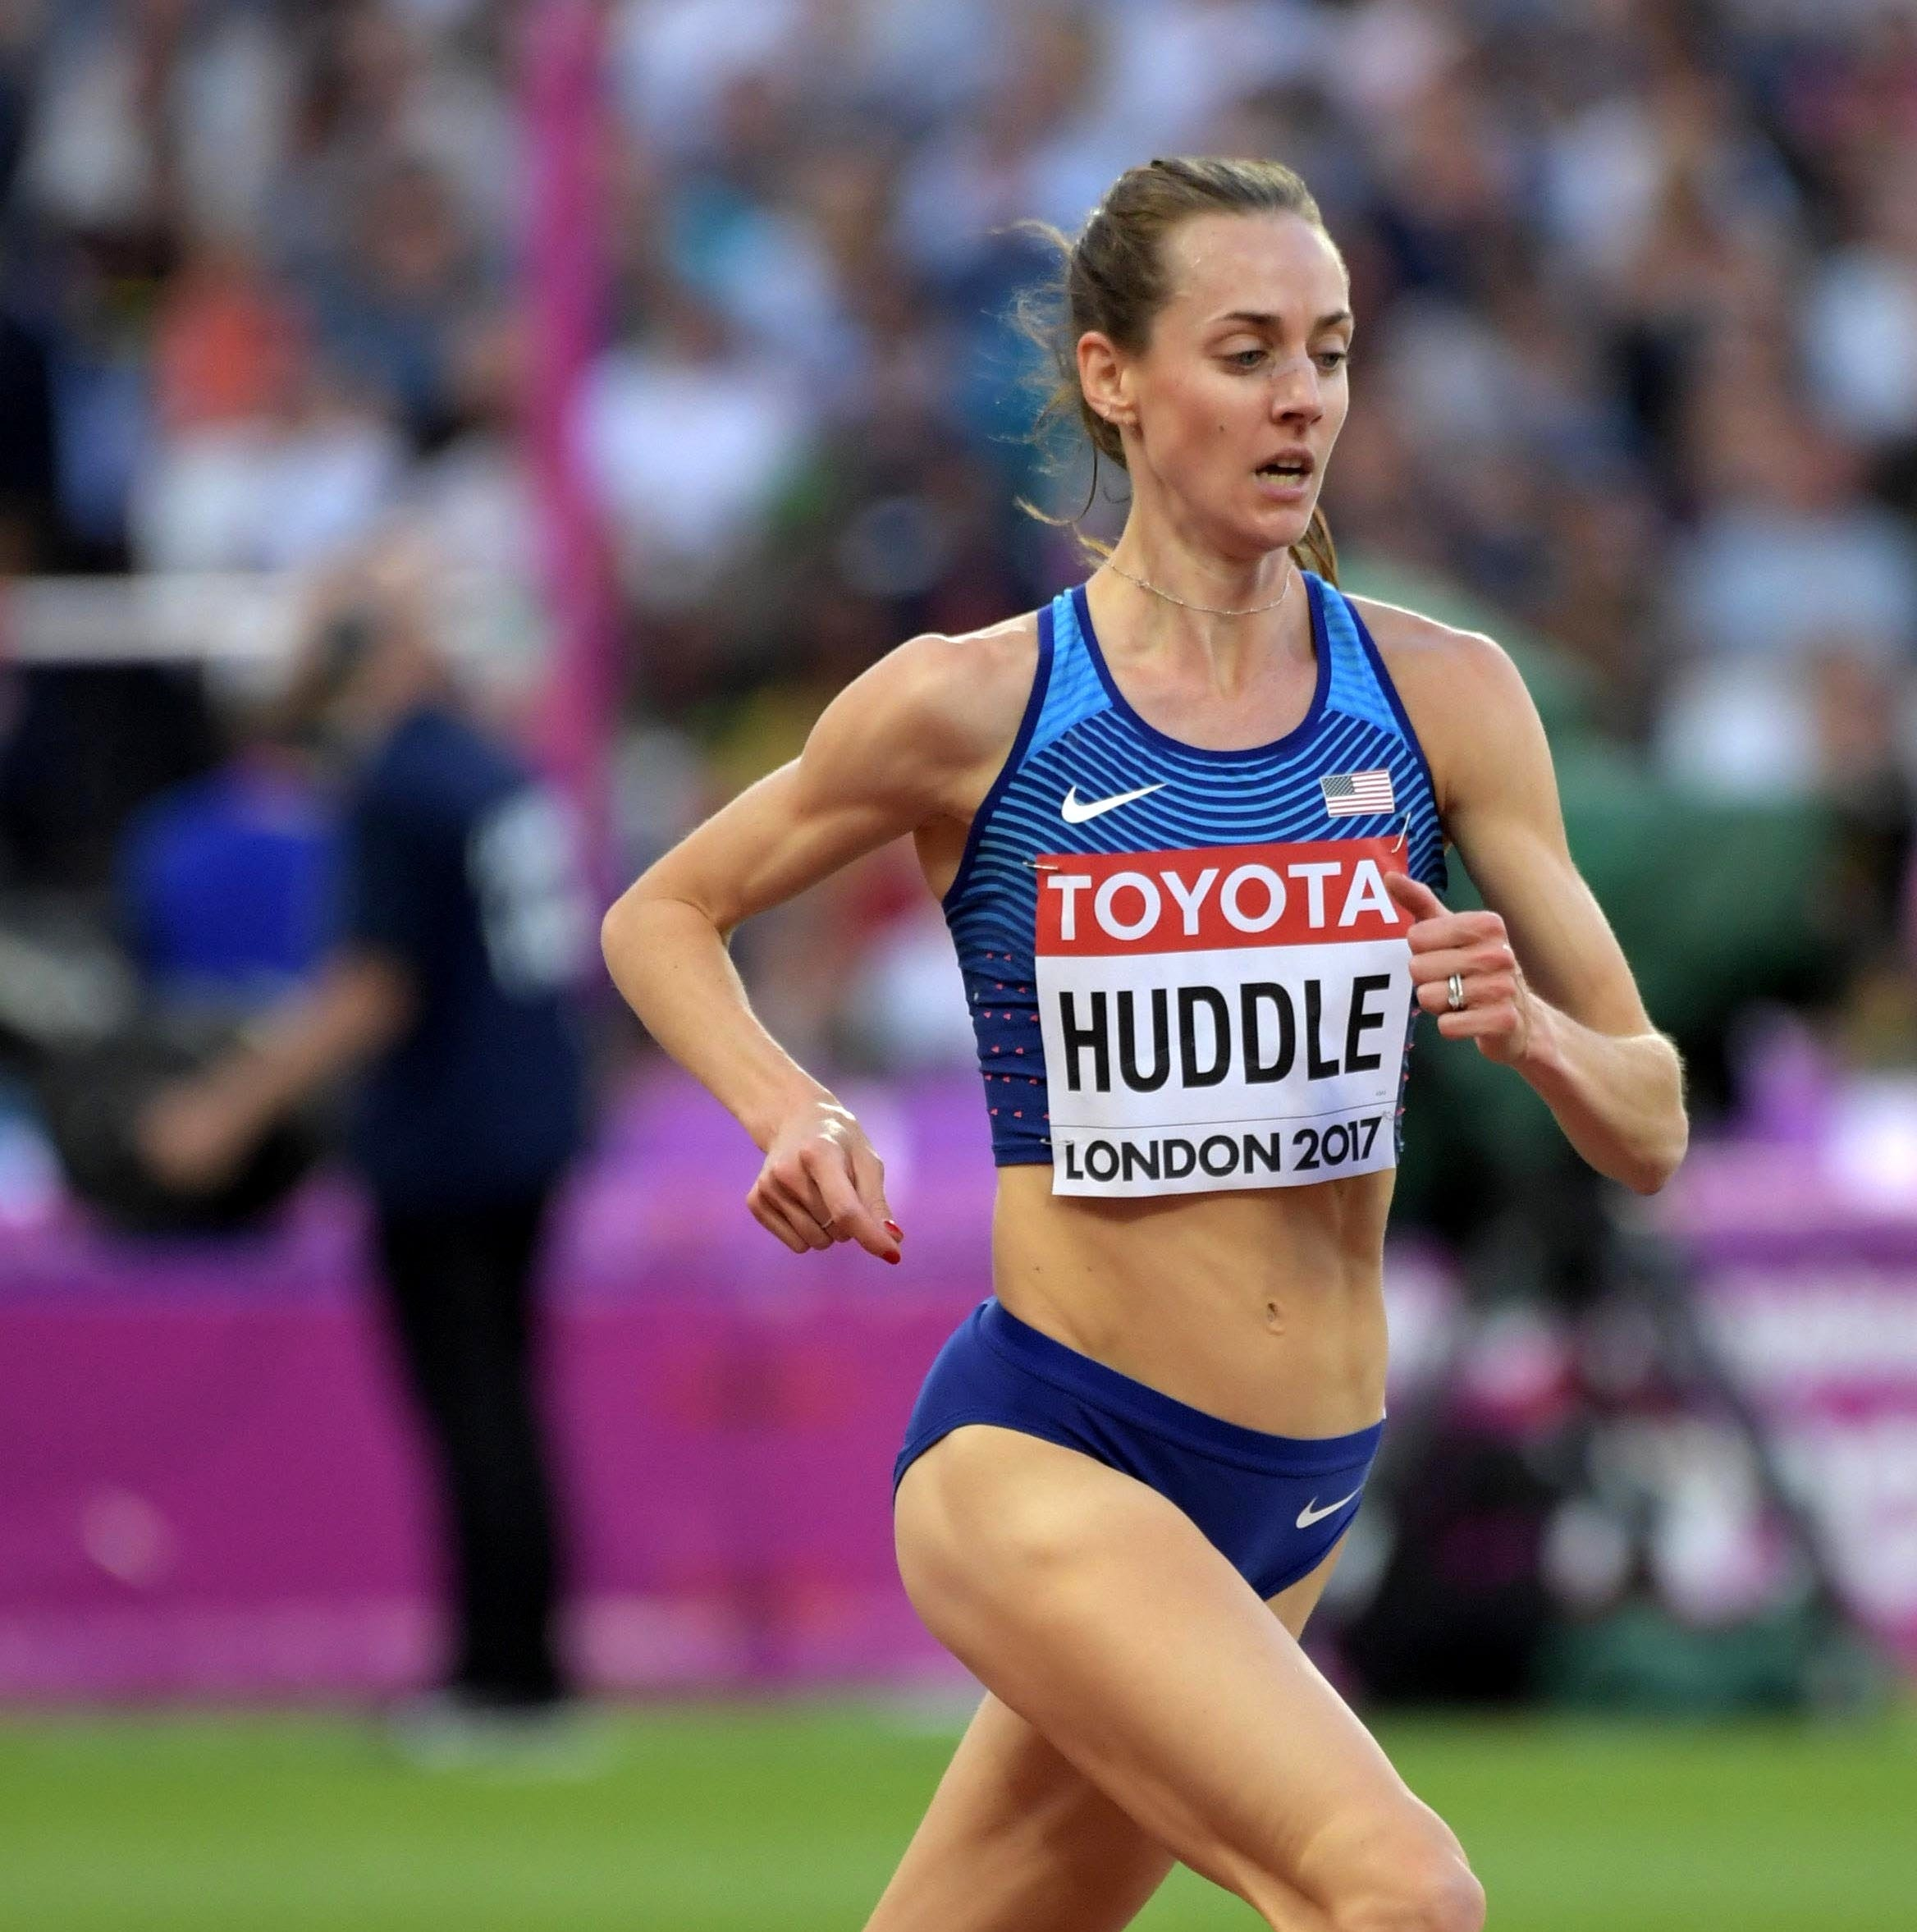 Molly Huddle second in 10K at Stanford Invitational as she gears up for London Marathon